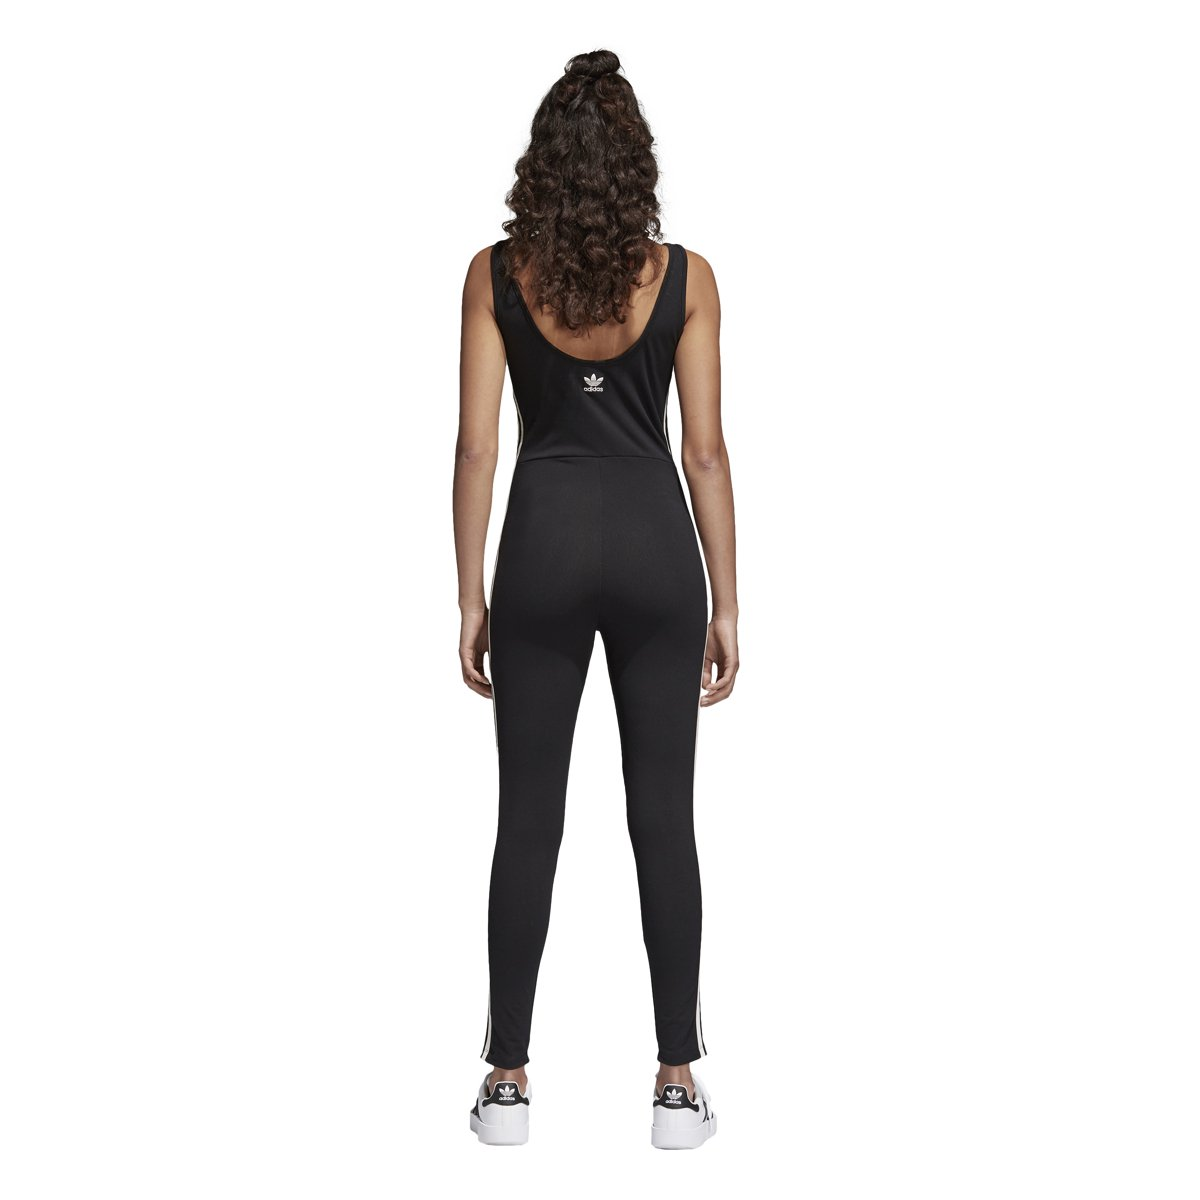 001cd5238c02 Amazon.com  adidas Women Clothing Adibreak Jumpsuit CE4173 (XL)  Clothing